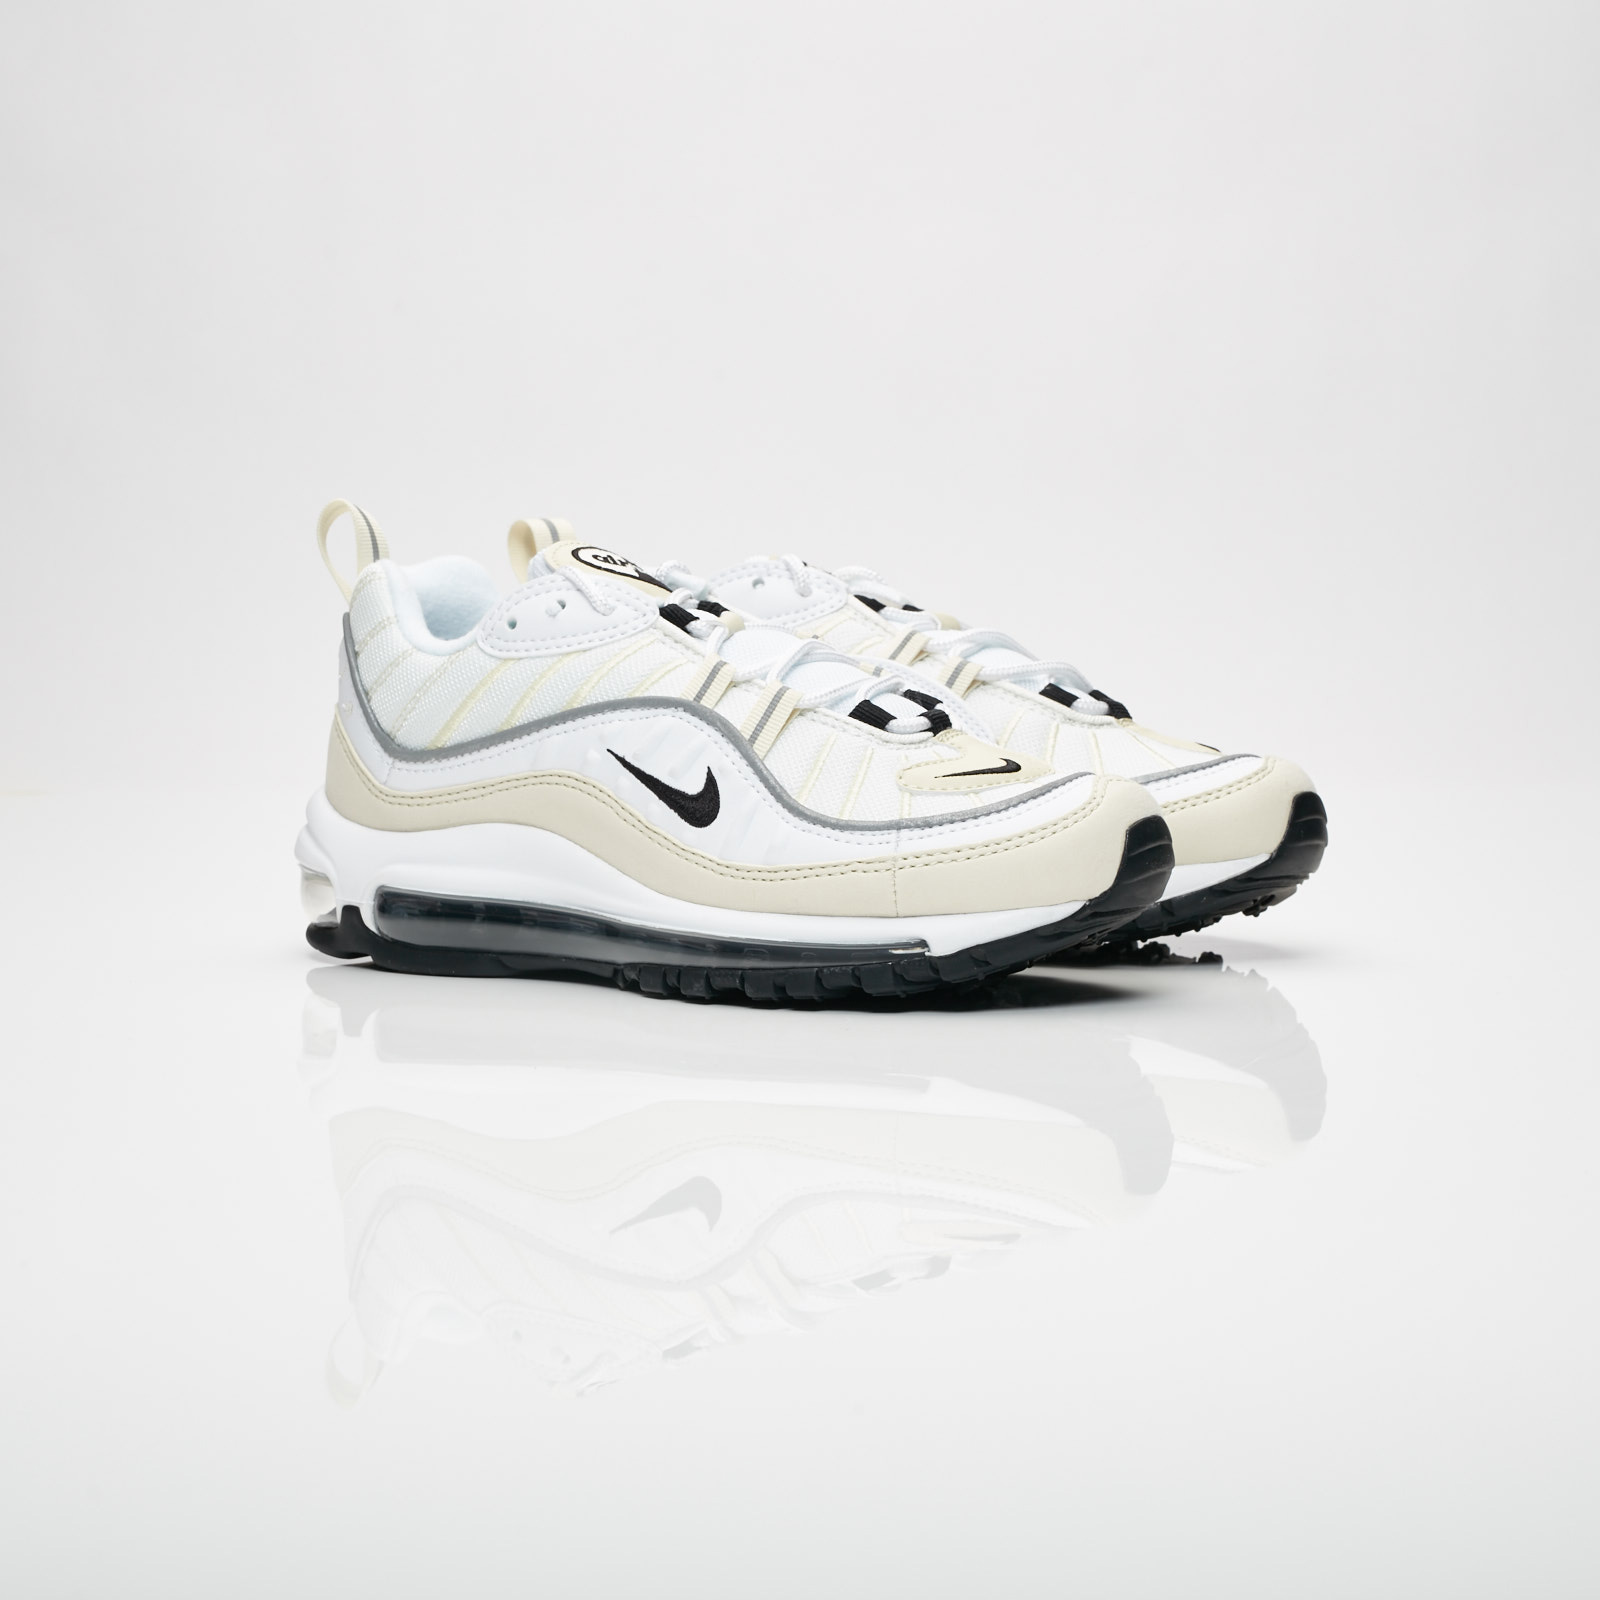 Details about Nike Air Max 98 White Fossil Reflect Silver Black AH6799 102 Women's Size 12